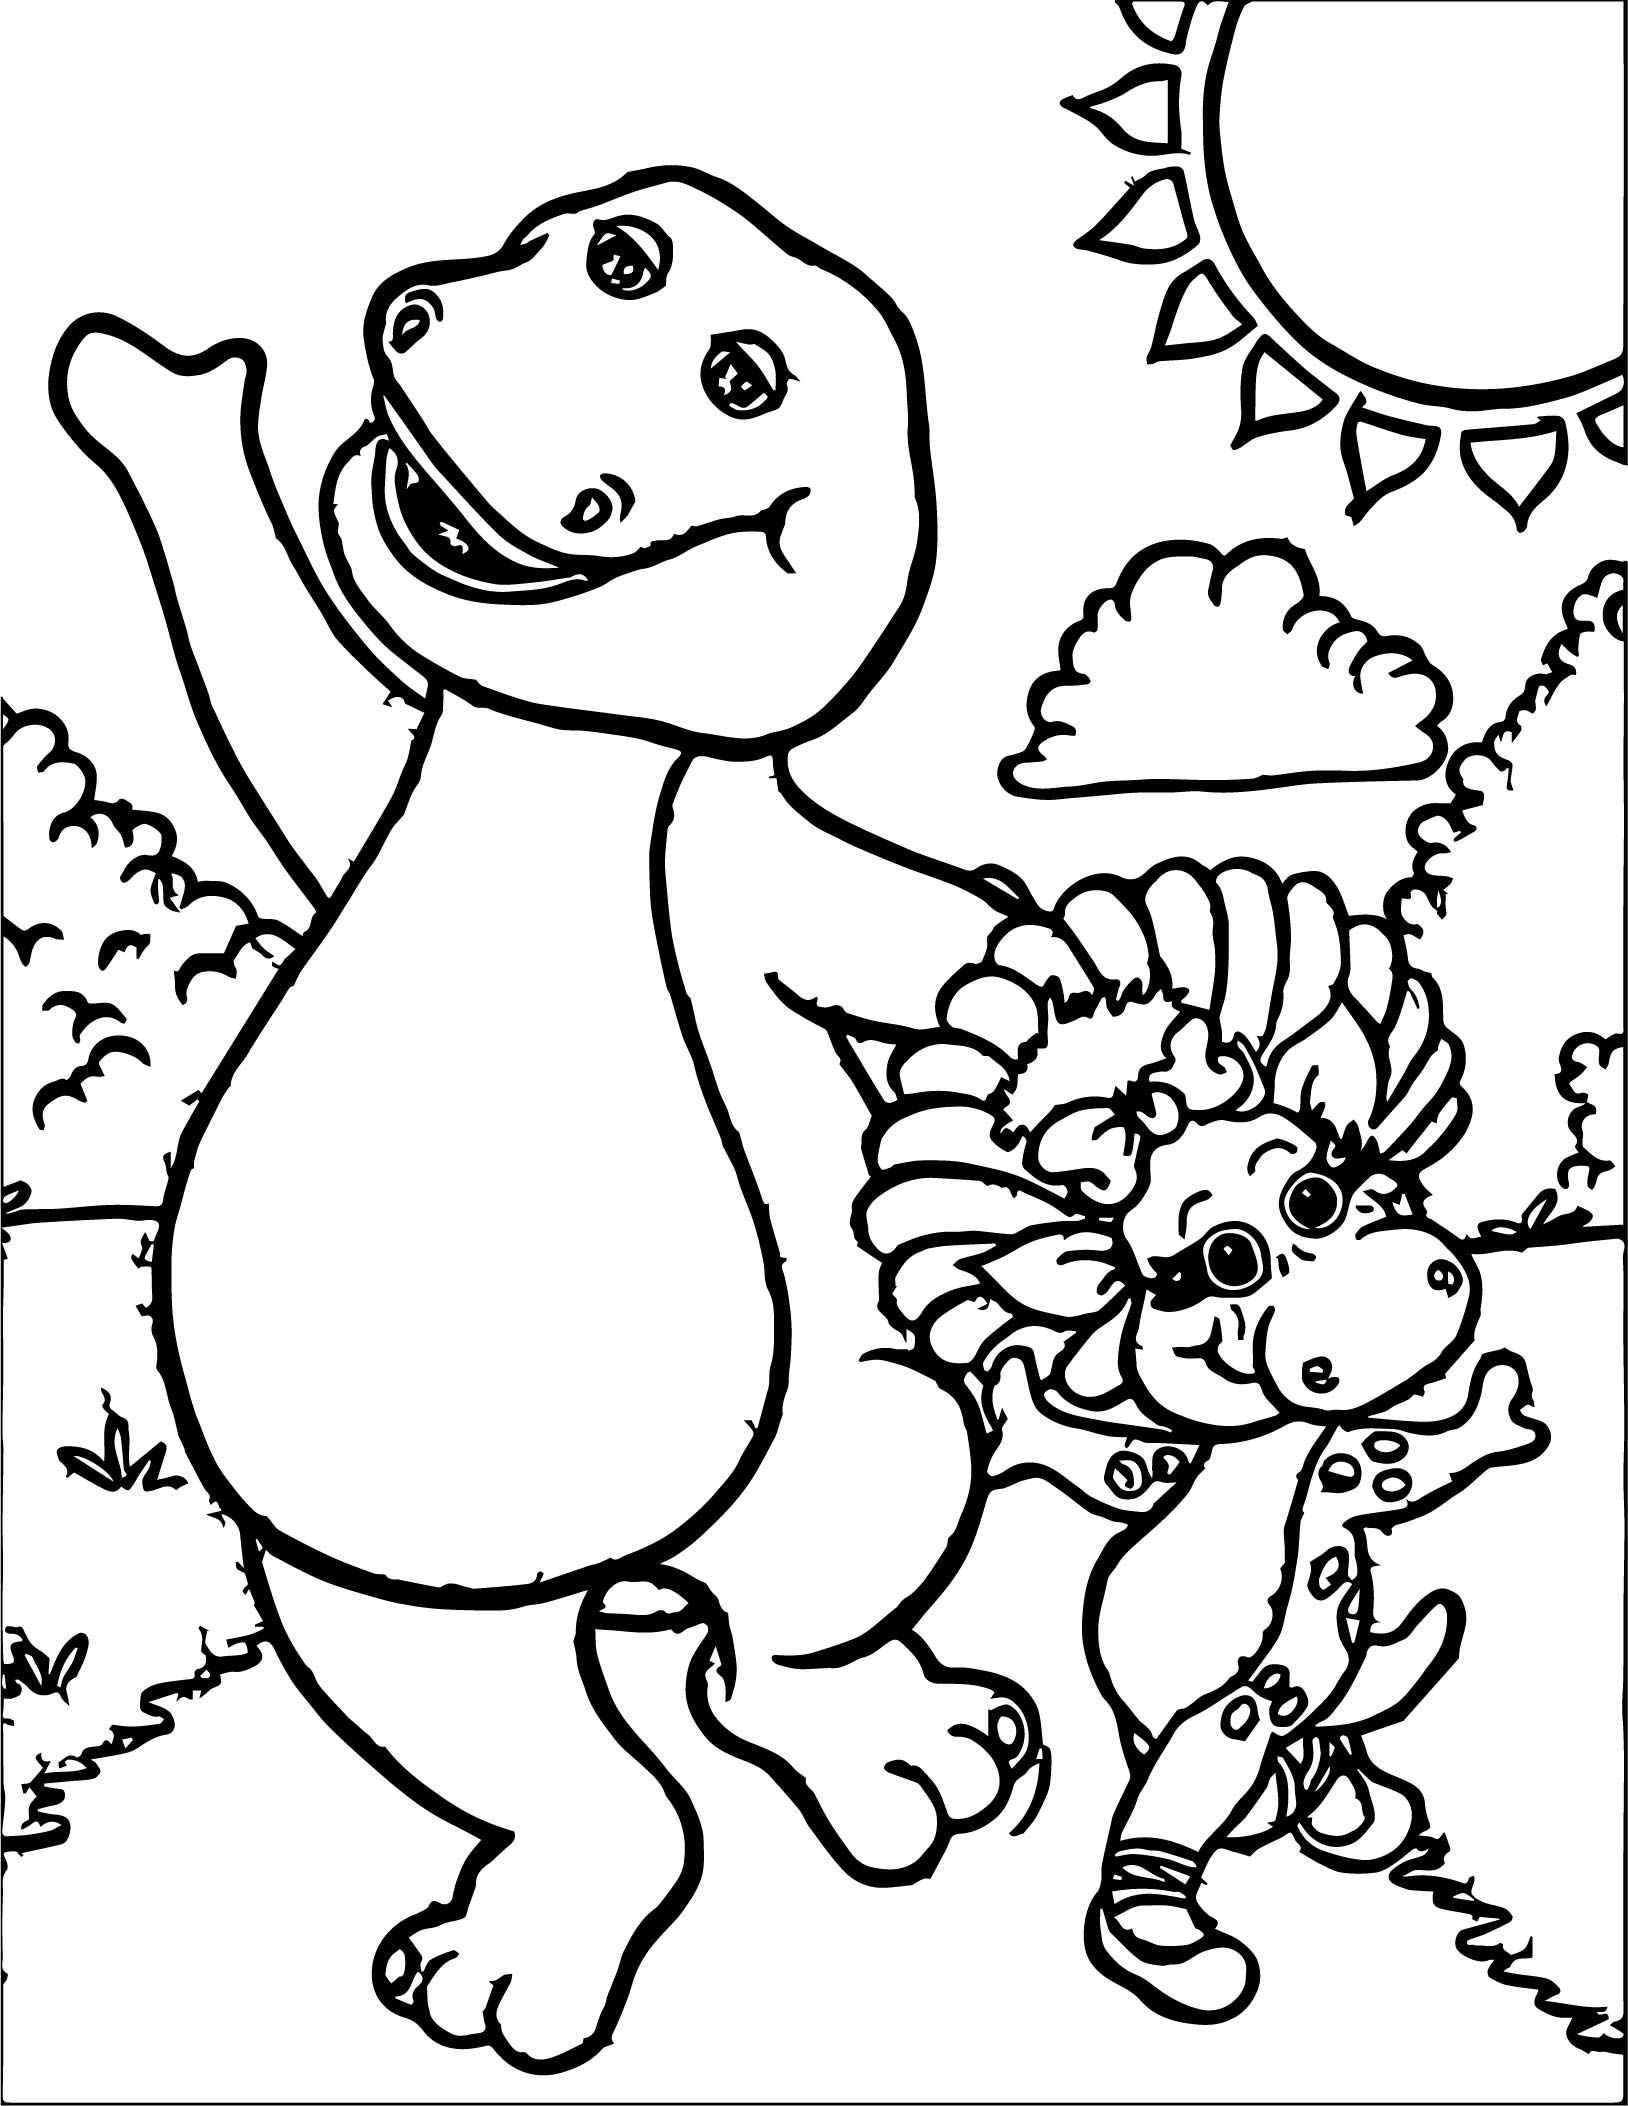 Awesome Barney And Baby Bop Have Fun Together Coloring Page Printable Coloring Pages Cartoon Coloring Pages Coloring Pages